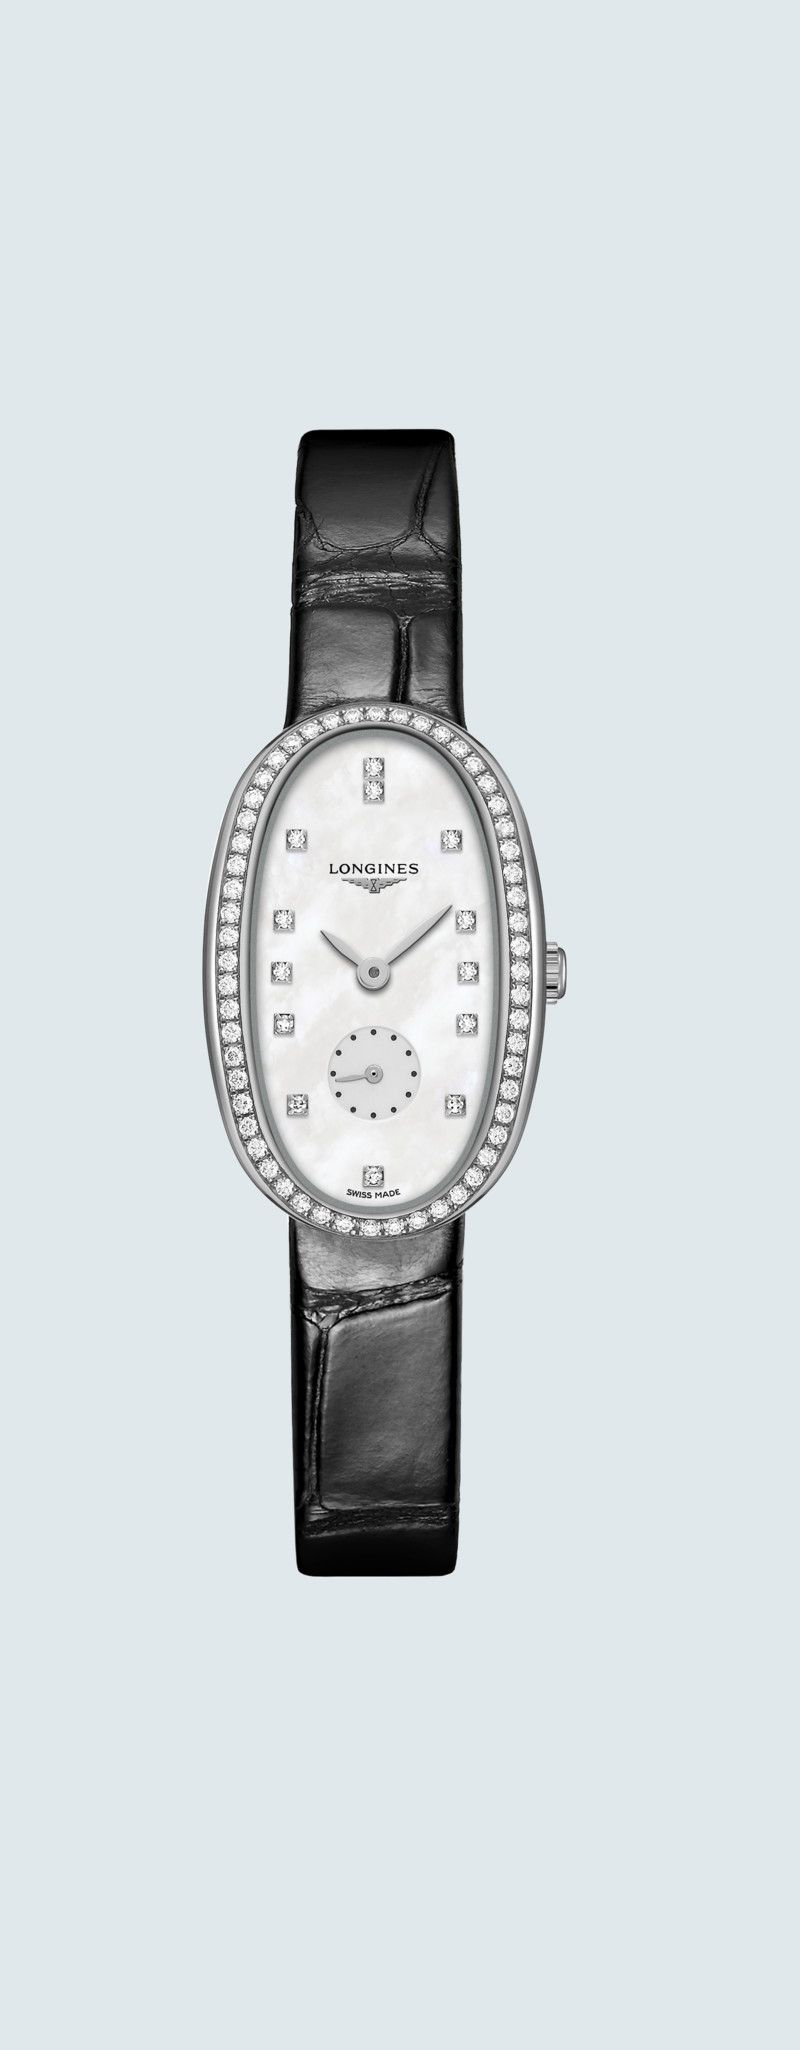 21.90 X 34.00 mm Stainless steel case with White mother-of-pearl dial and Alligator strap Black str